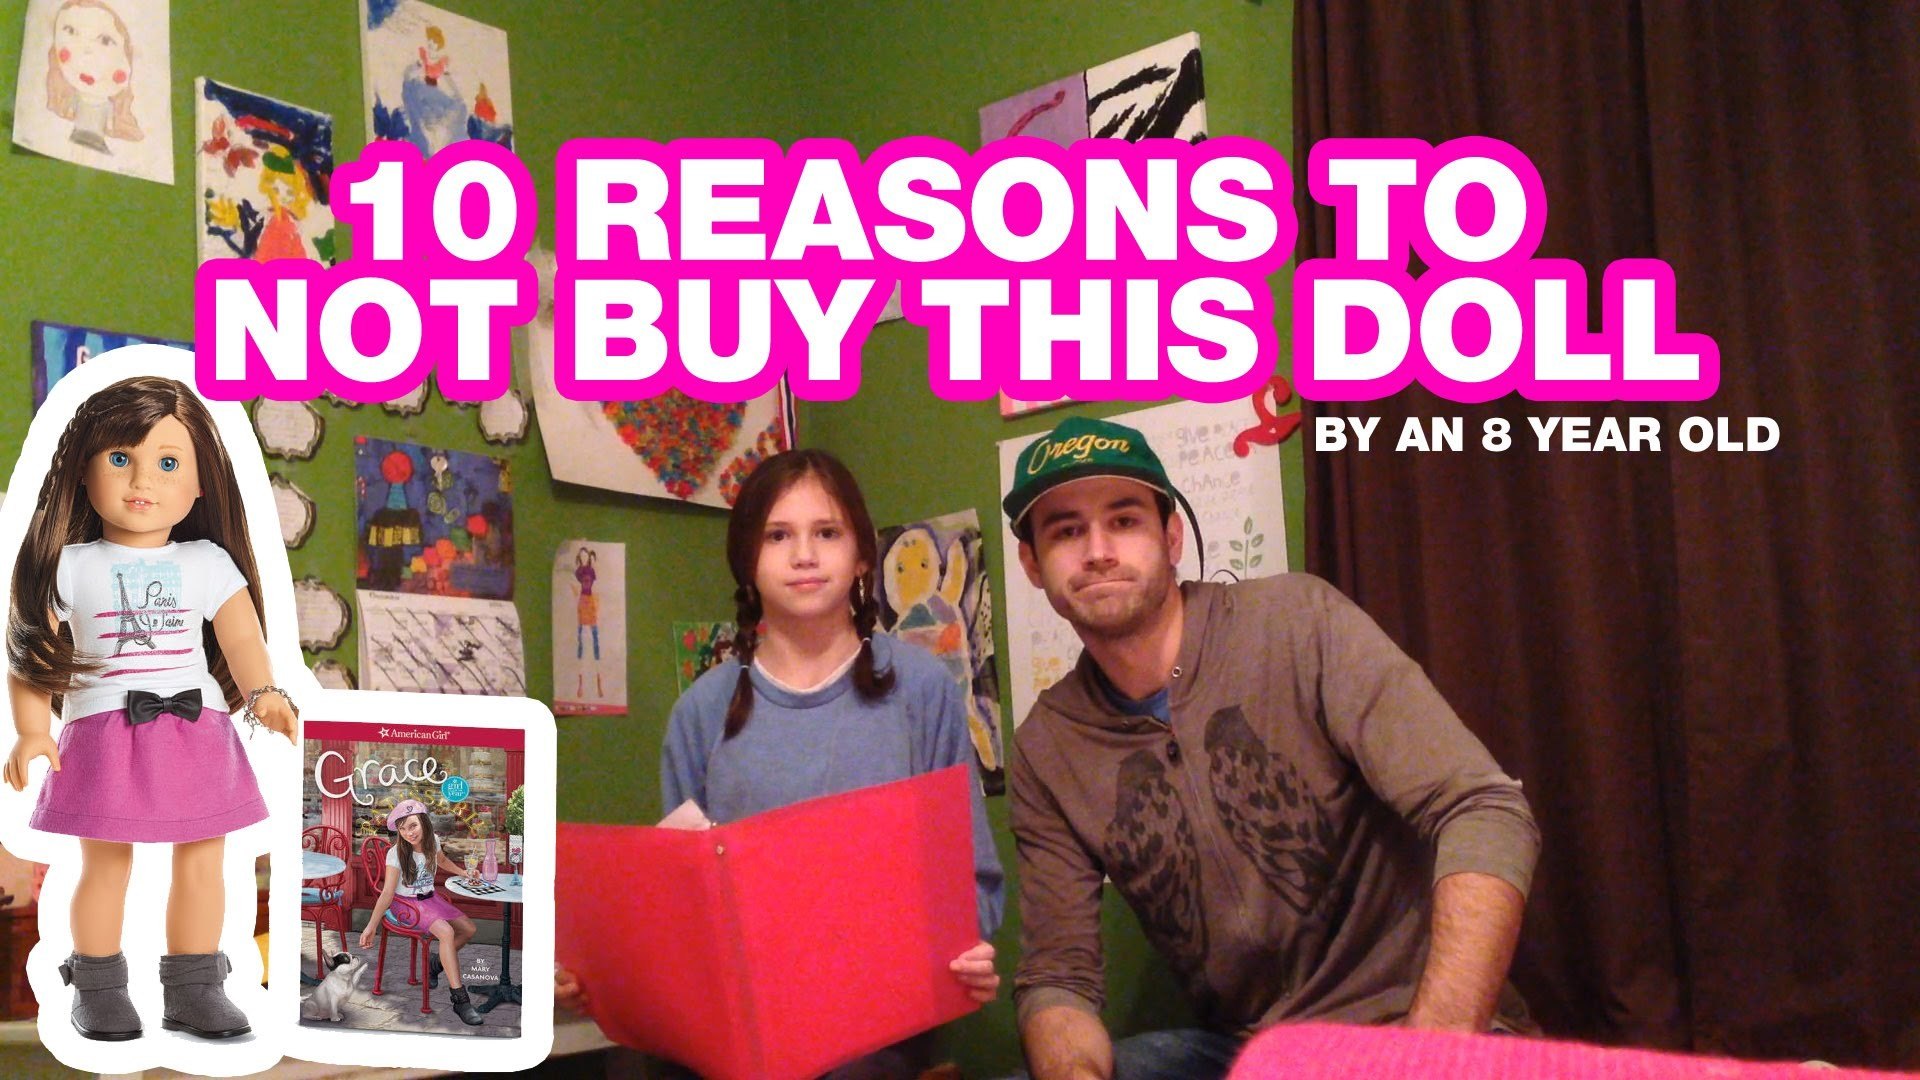 10 Reasons to NOT buy Grace Thomas 2015 American Girl Doll – by an 8 Year  old girl. – YouTube